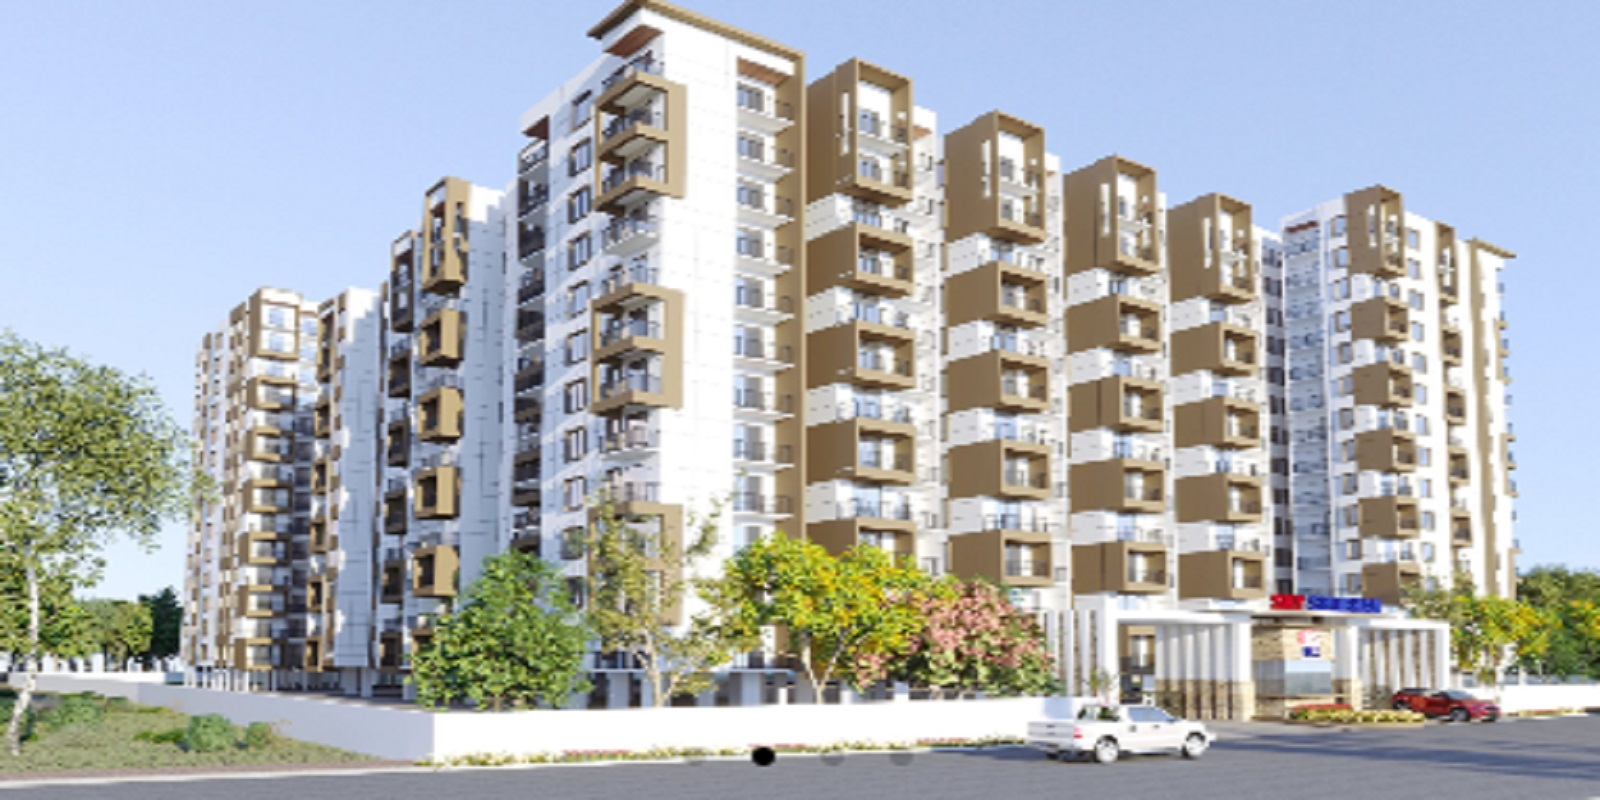 ds max sky shubham project project large image1